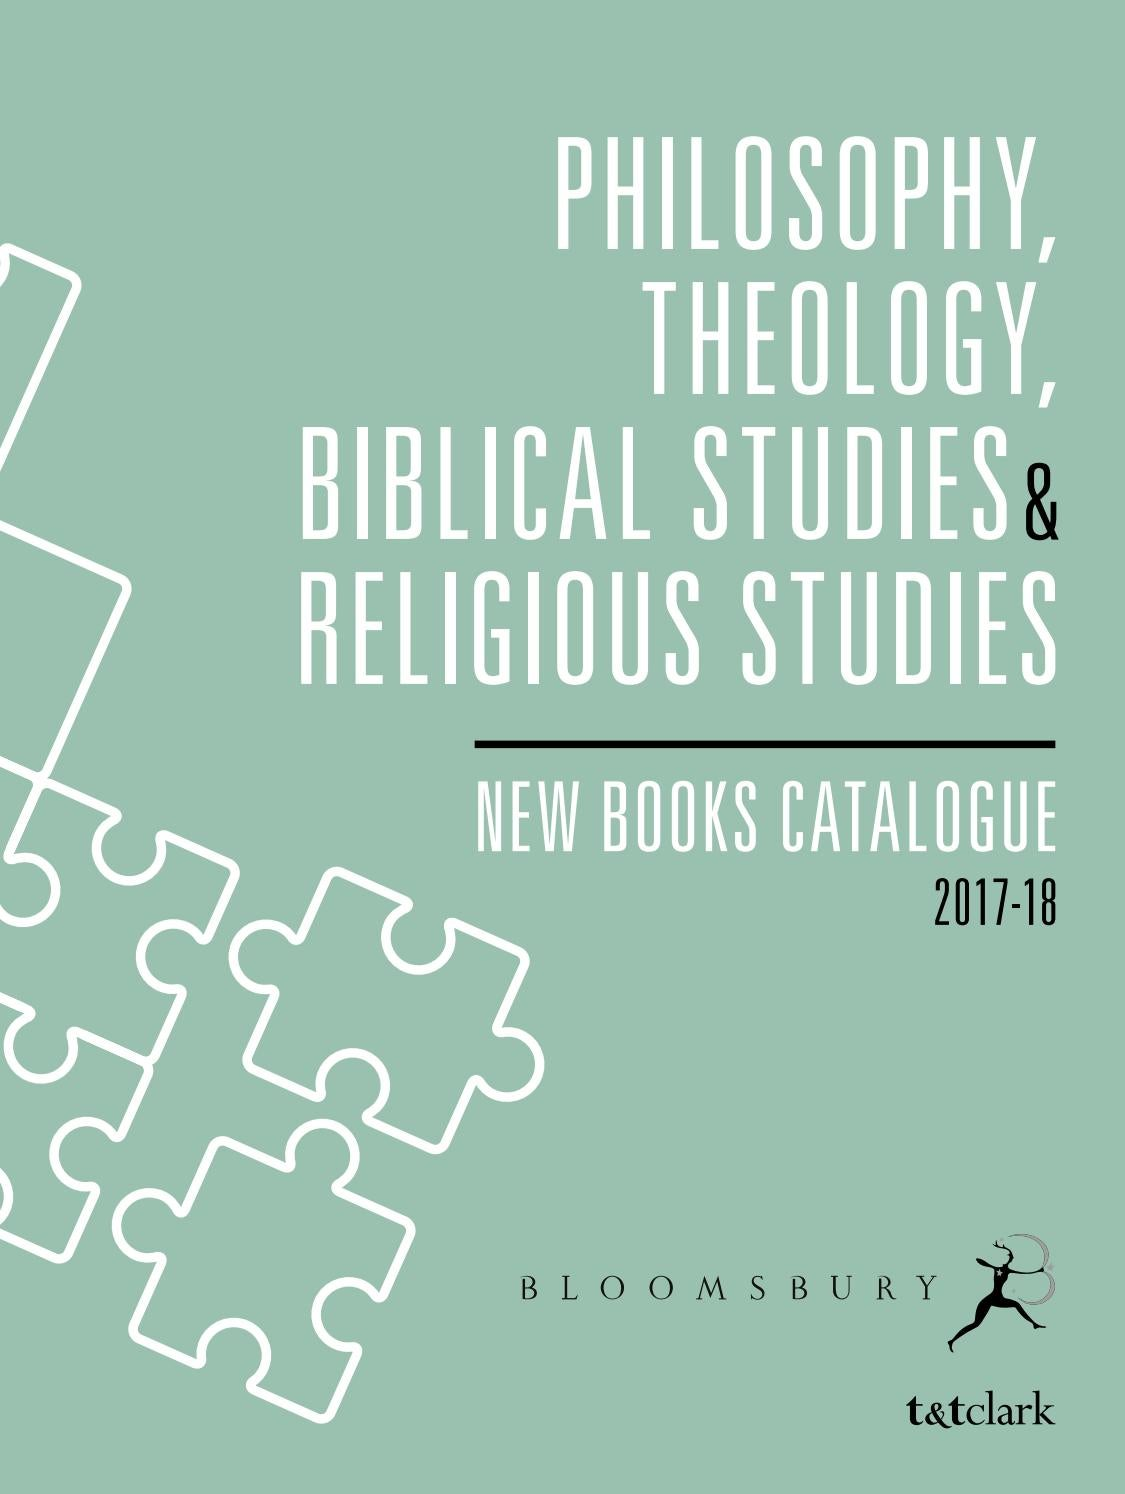 Philosophy Theology Biblical Studies Religious Studies Catalogue 2017 18 By Bloomsbury Publishing Issuu He was a liar and murderer from the beginning. that should open your eyes to how christ felt about the joos. philosophy theology biblical studies